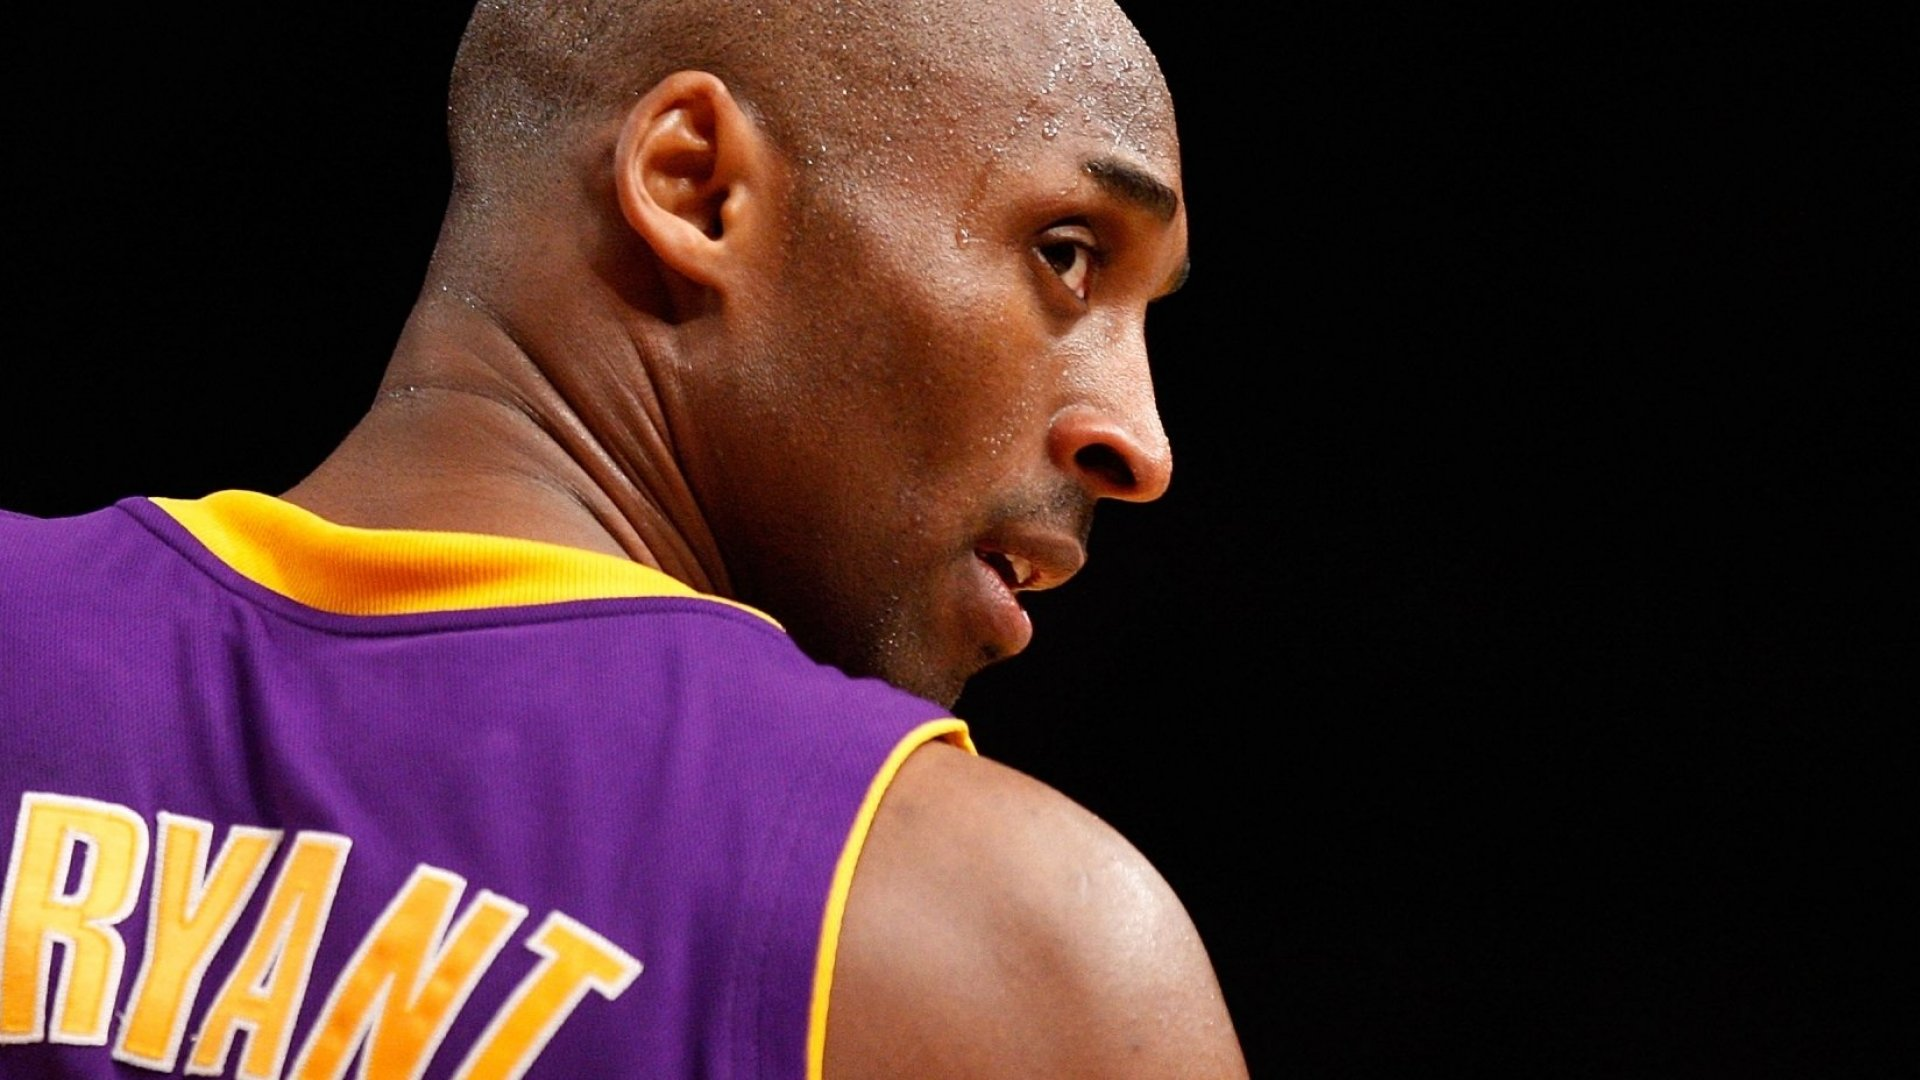 How To Become The Best 3 Things That Made Kobe Bryant One Of The Greatest Players Of All Time Inc Com